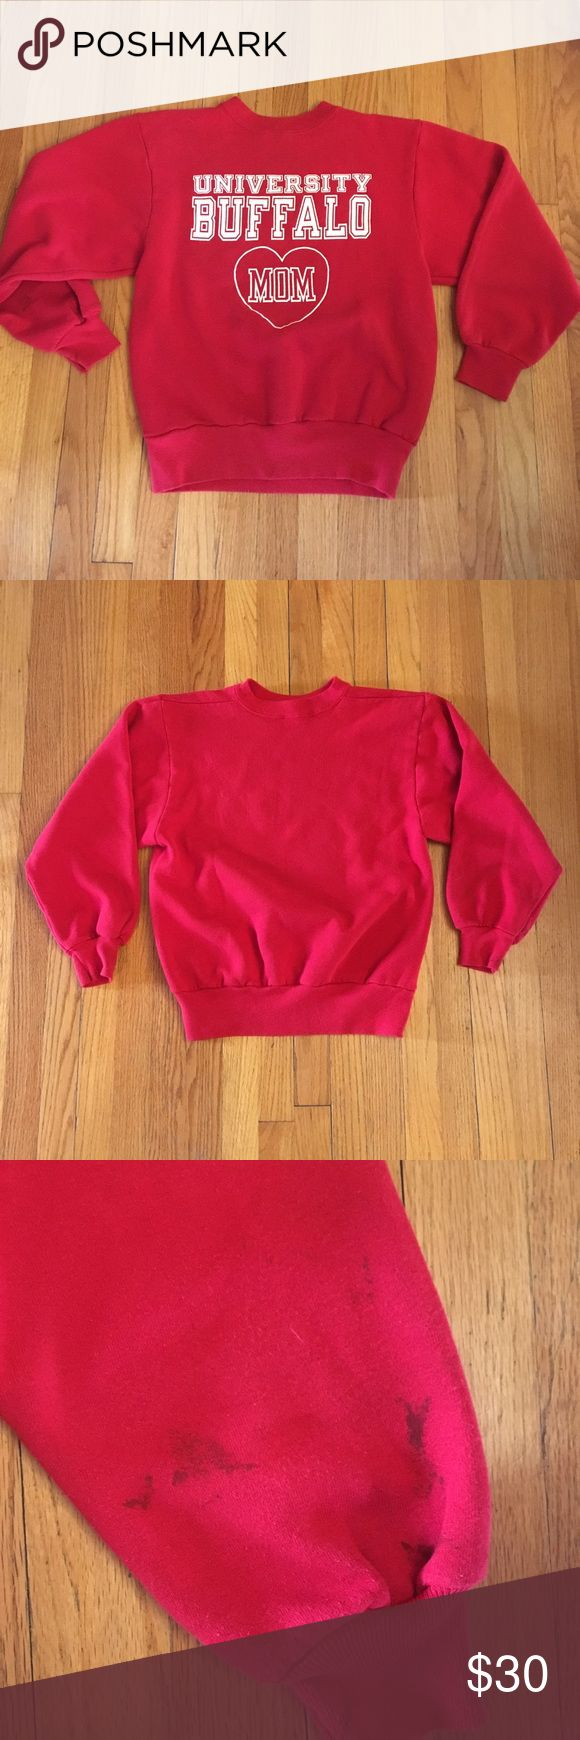 "Vintage Buffalo University Mom Sweatshirt I'm not a mom but I'd gladly rock this darling vintage sweatshirt! Worn in red cotton material but not worn out! Only condition issue is dark stain on one sleeve (see last photo). You could always cut the sleeves and make a short sleeved sweater to fix that. Best fits a size small. Fitted on a M and oversized on XS. 23"" long and 19"" bust when laying flat. Vintage Tops Sweatshirts & Hoodies"